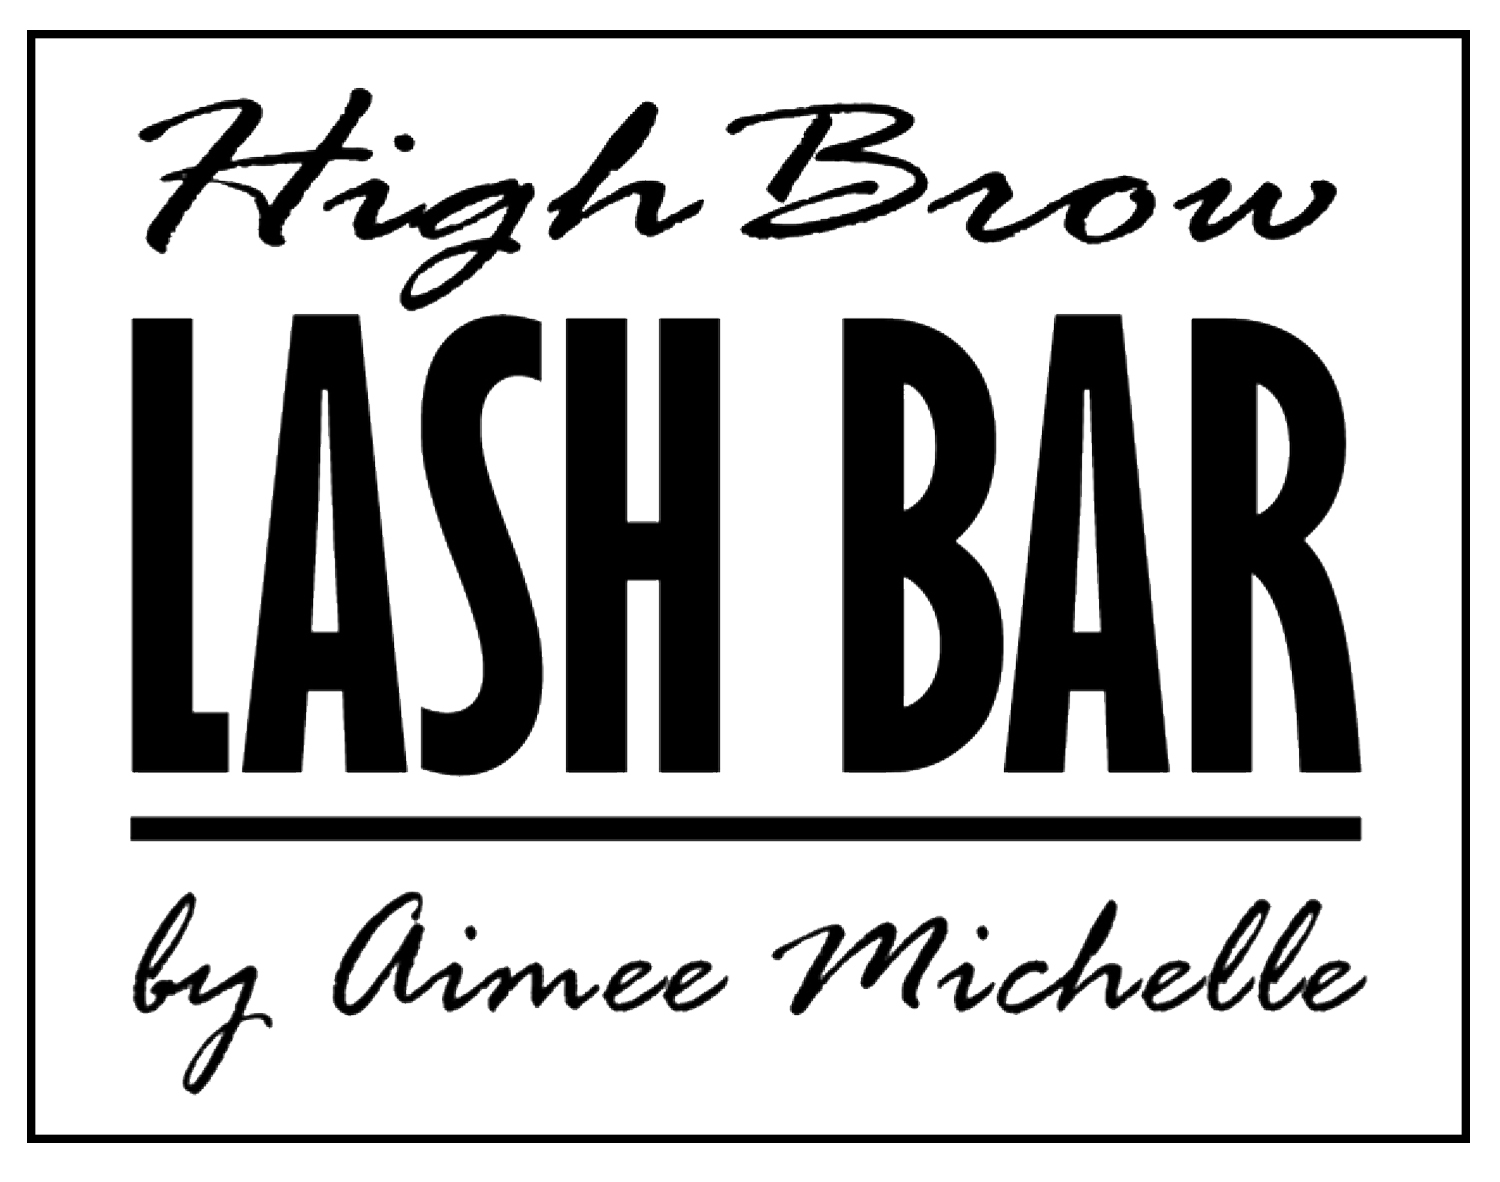 HighBrow Lash Bar